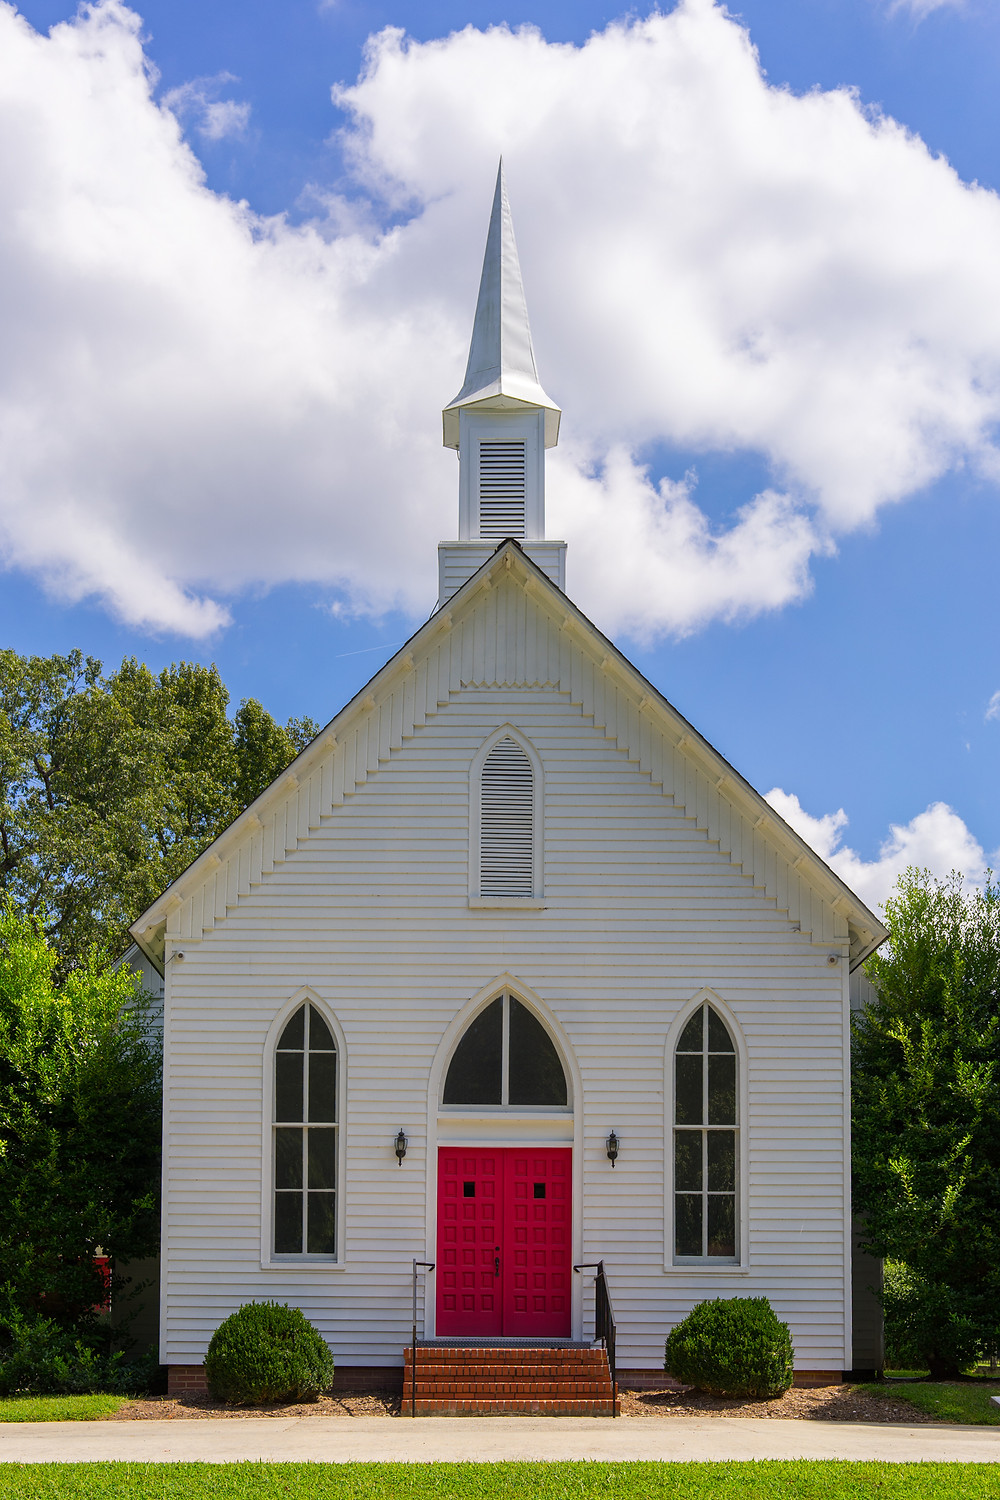 It seems that every other road in NC leads to a church.  This one is less than two miles away. Simple, yet elegant. I love the symmetry.